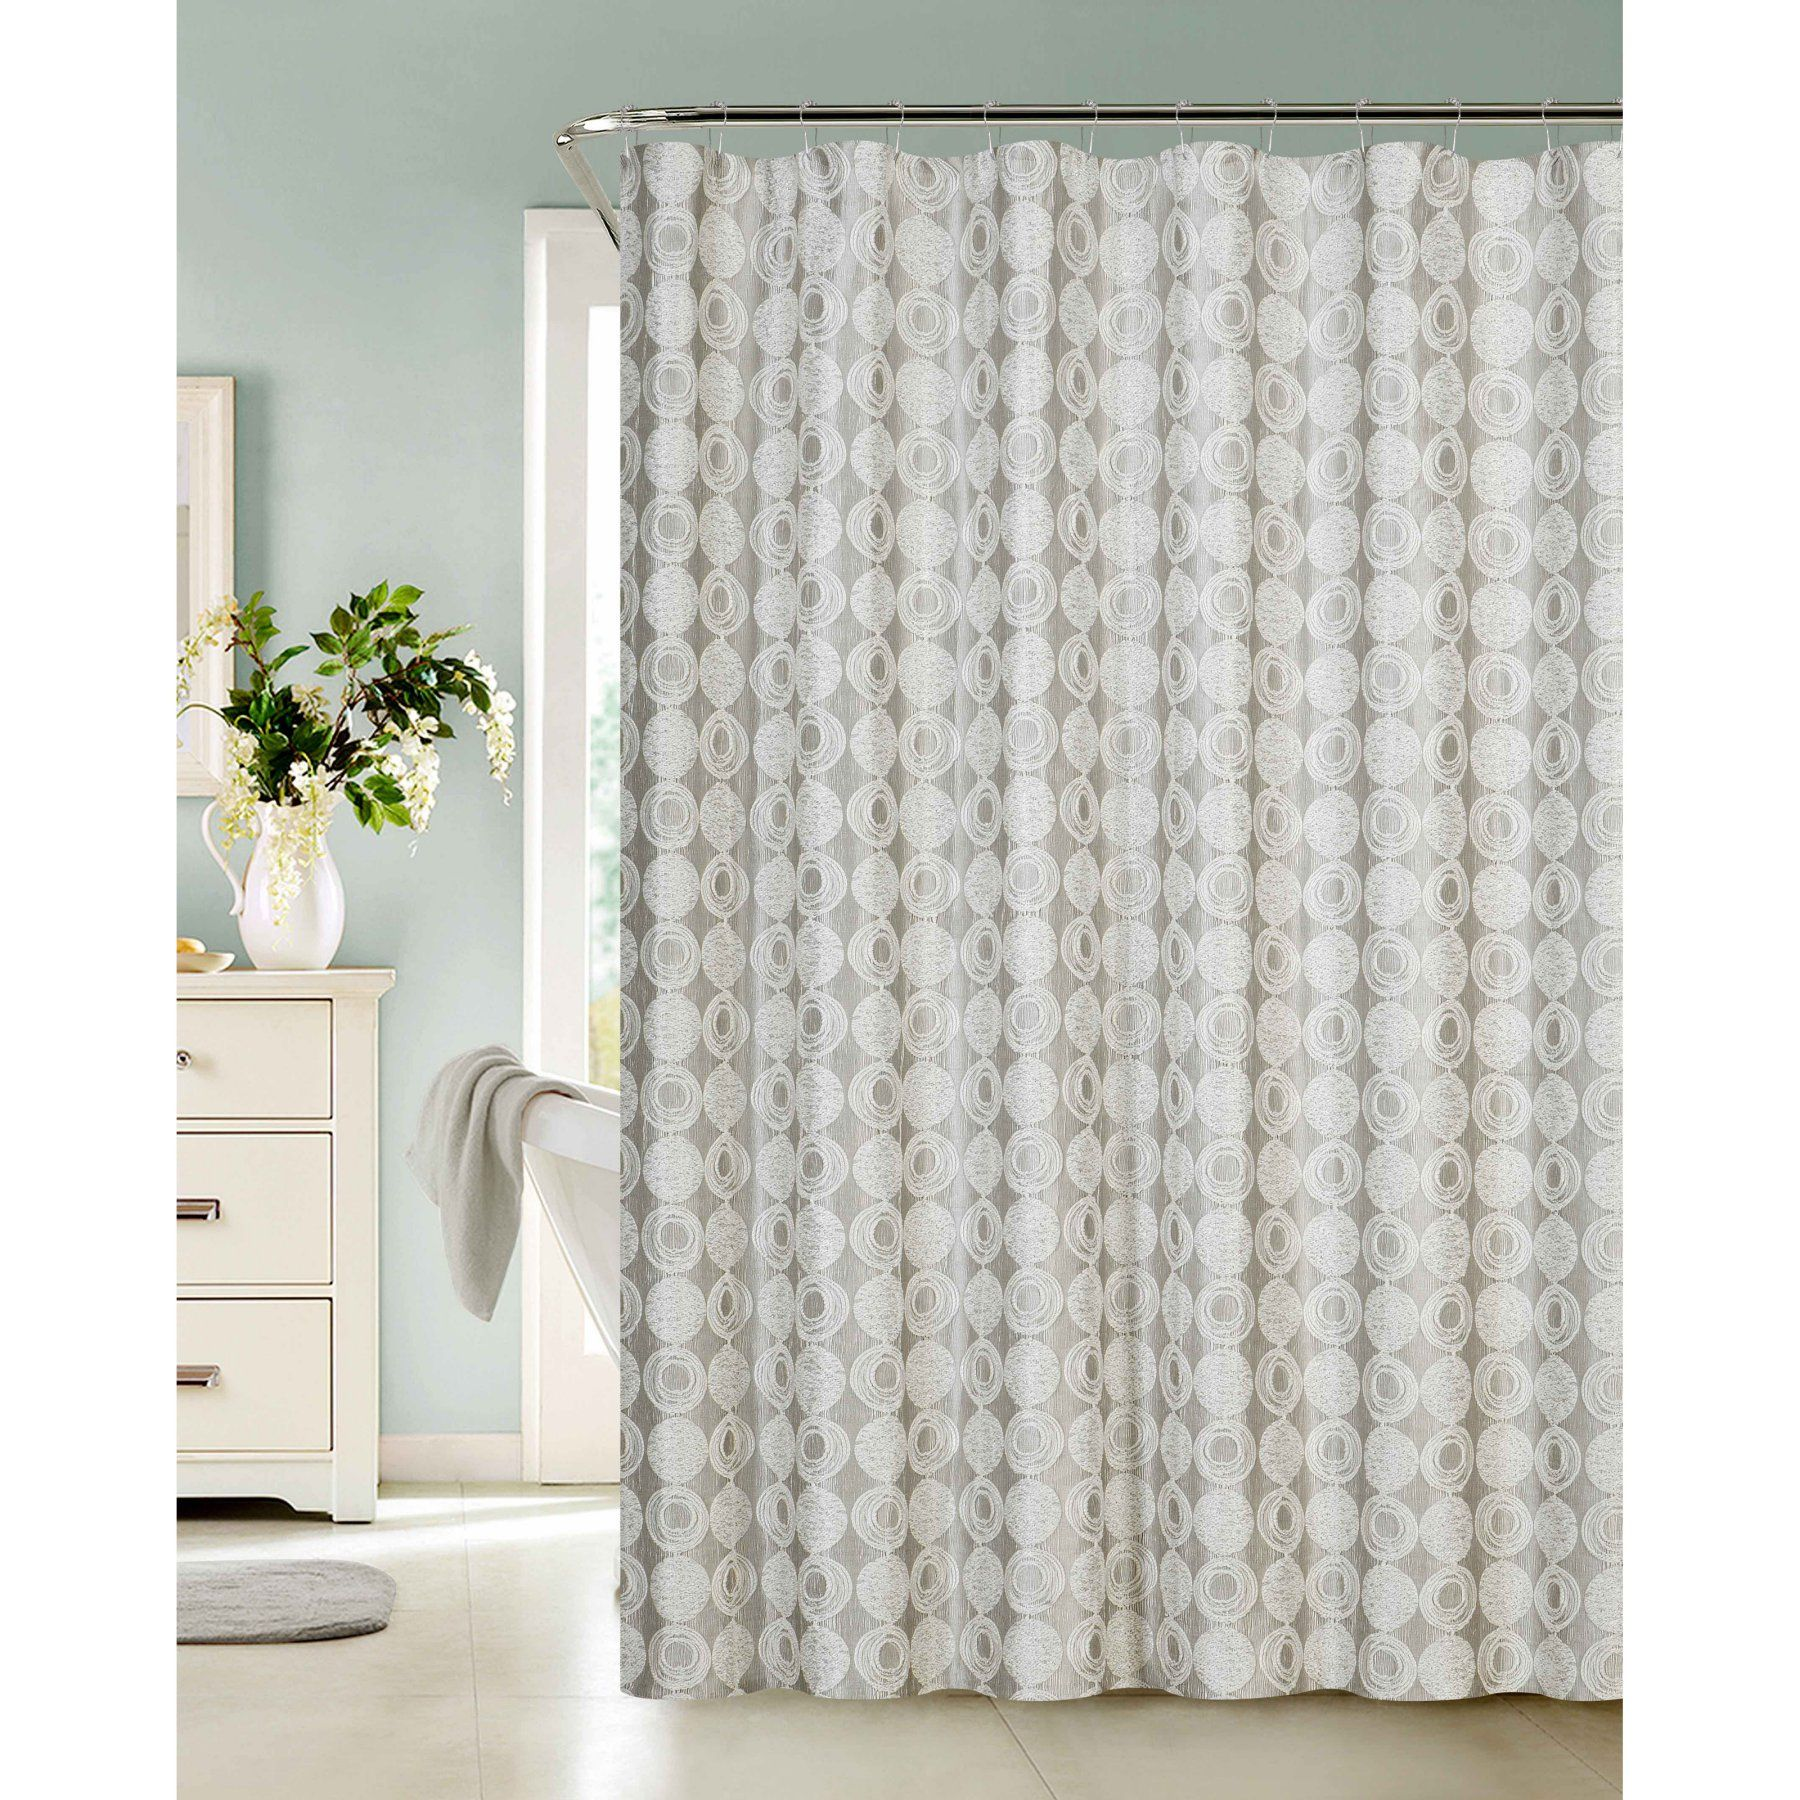 Dainty Home Twilight Heavy Textured Fabric Shower Curtain